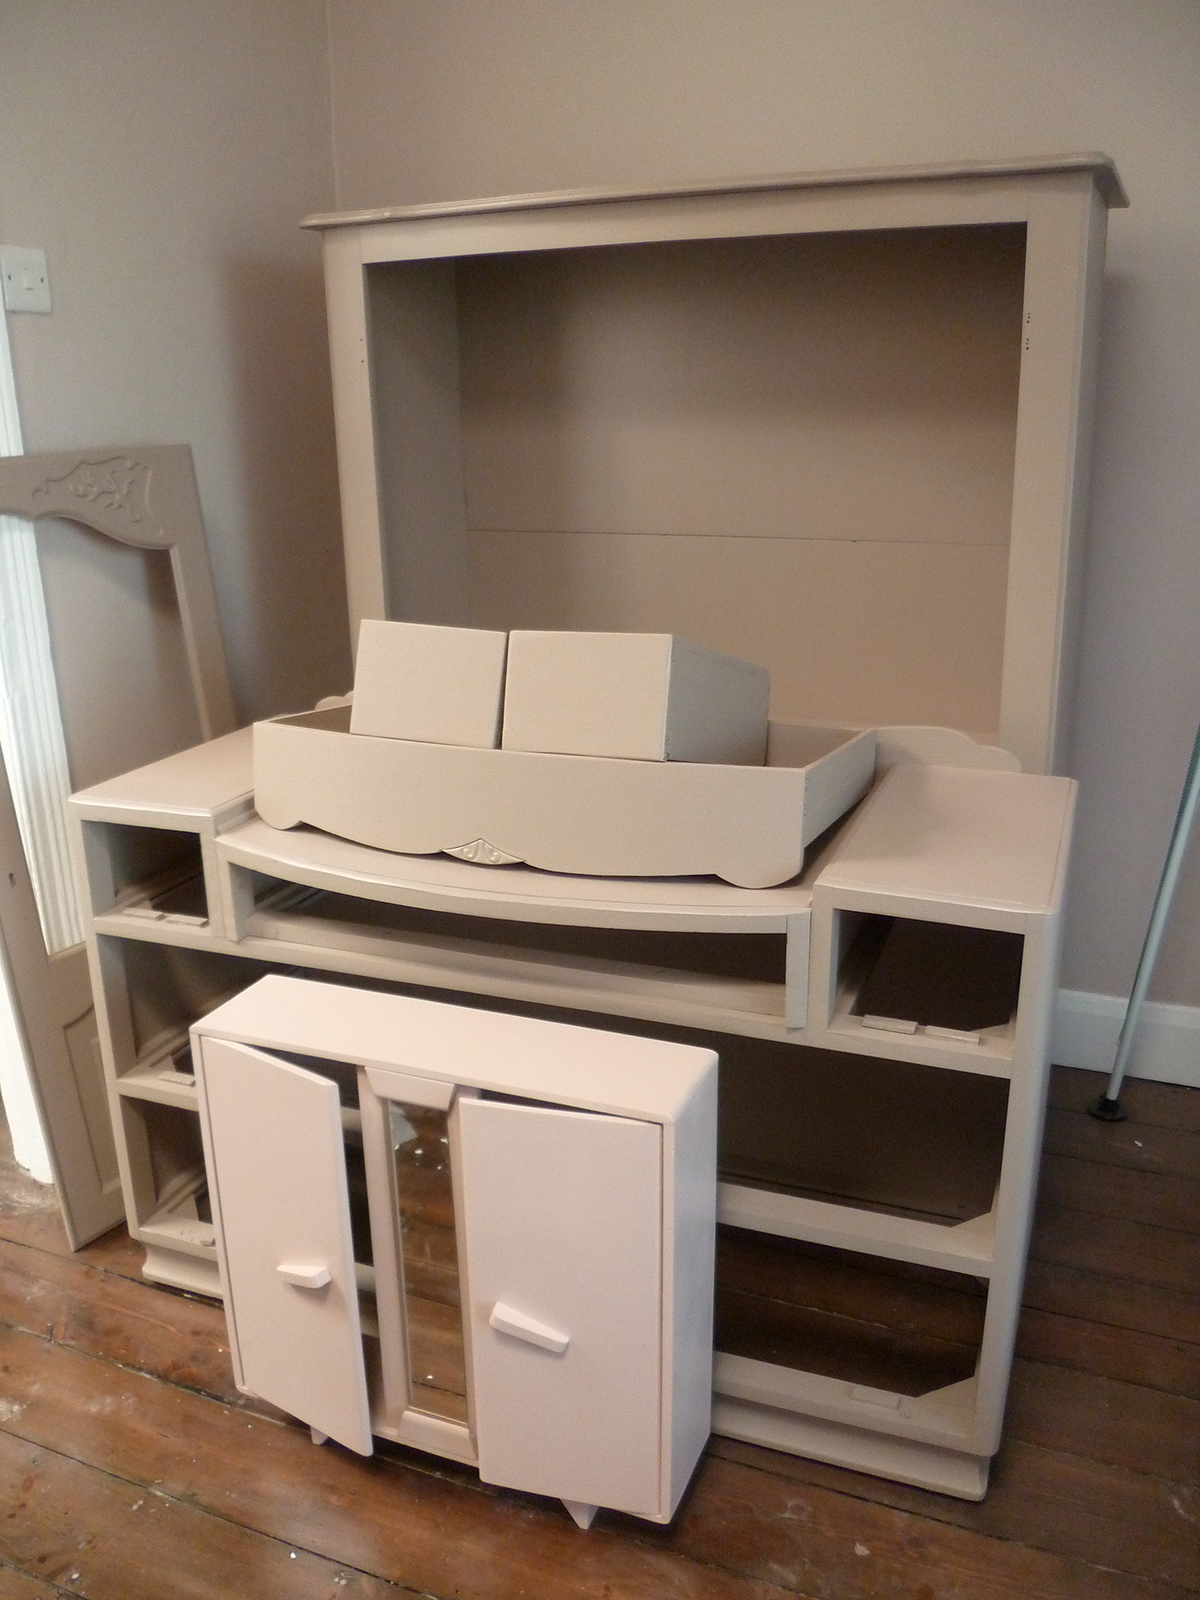 Preciously Me blog : One Room Challenge - Furniture makeover